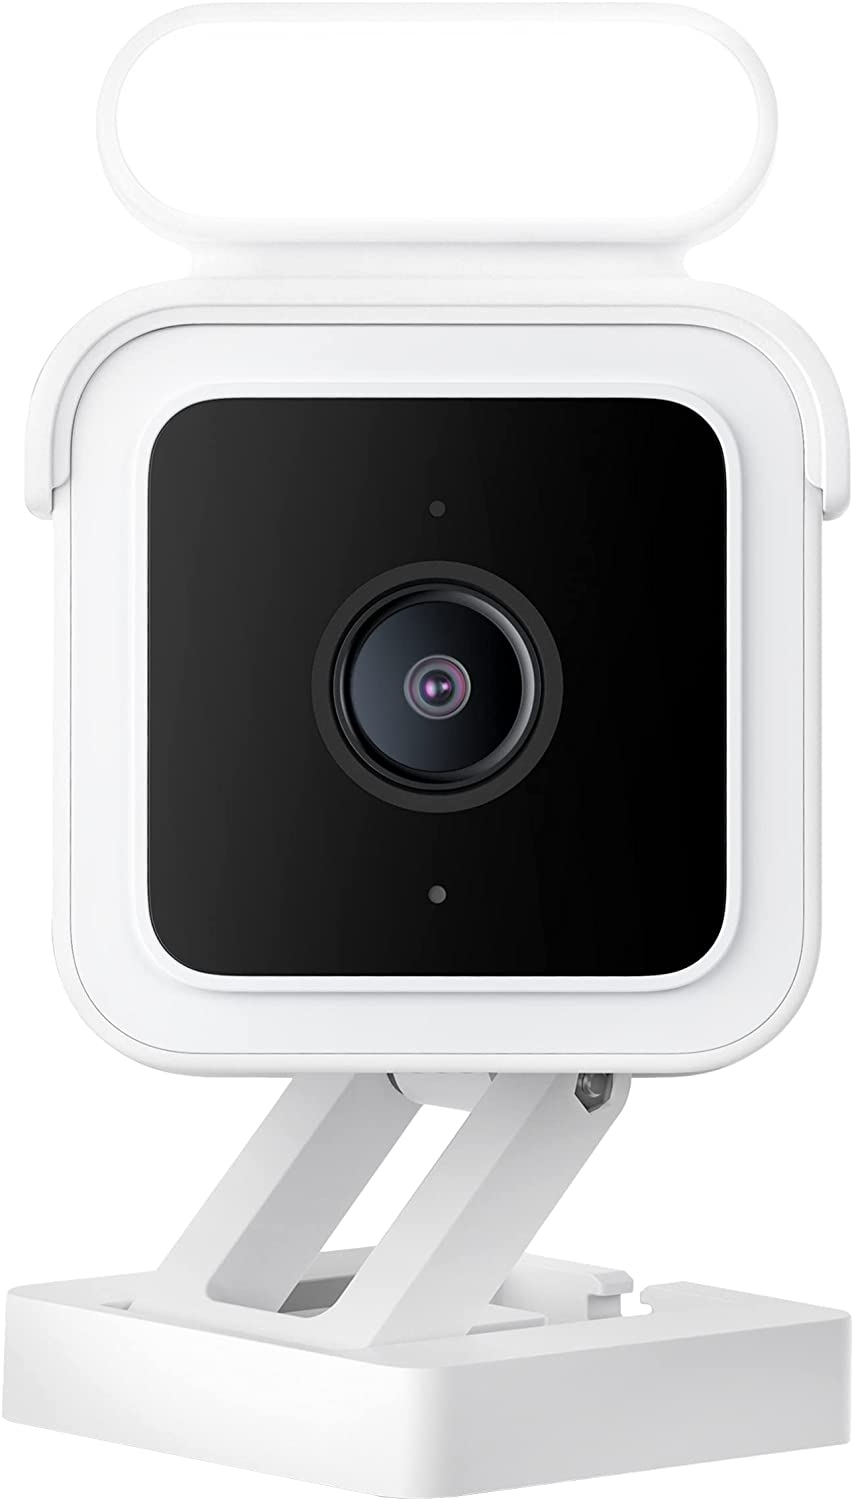 Wyze Cam Spotlight, Wyze Cam v3 Security Camera with Spotlight Kit, 1080p HD Security Camera with Two-Way Audio and Siren, IP65 Weatherproof, Compatible with Alexa and Google Assistant